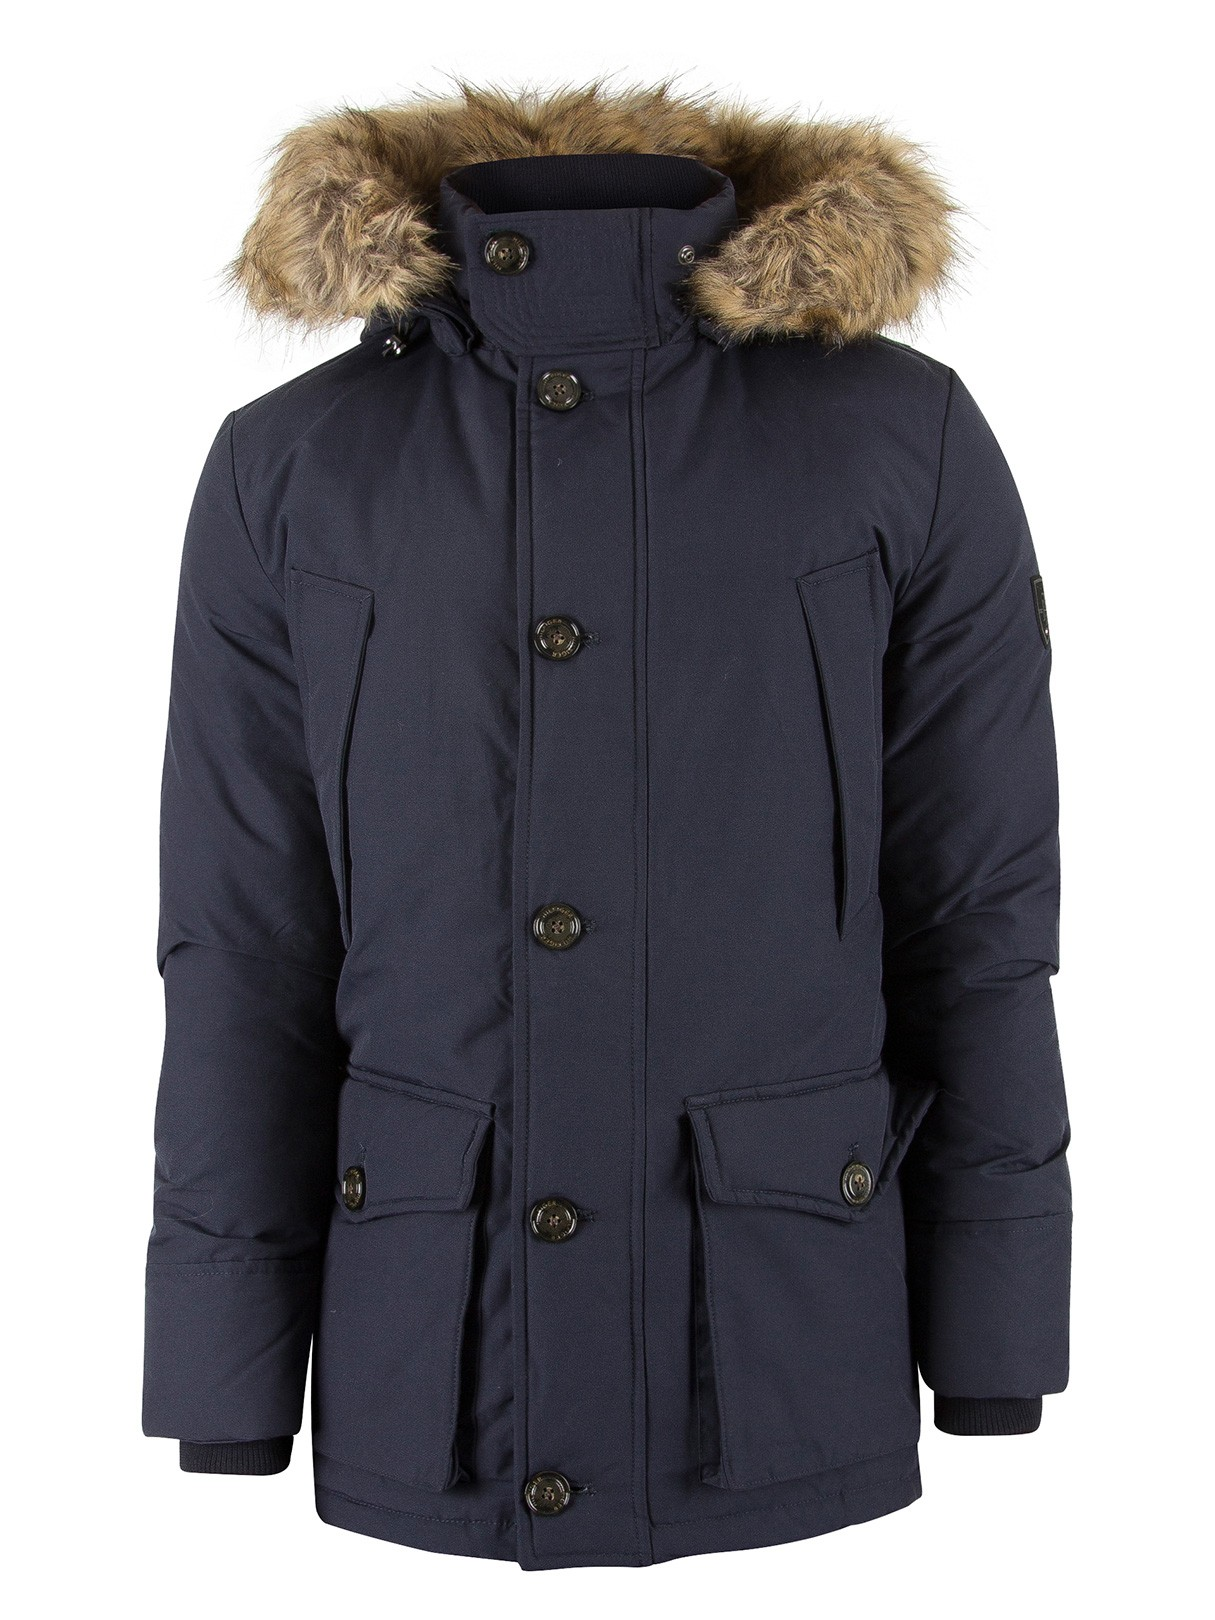 tommy hilfiger herren hampton daunenjacke parka blau ebay. Black Bedroom Furniture Sets. Home Design Ideas